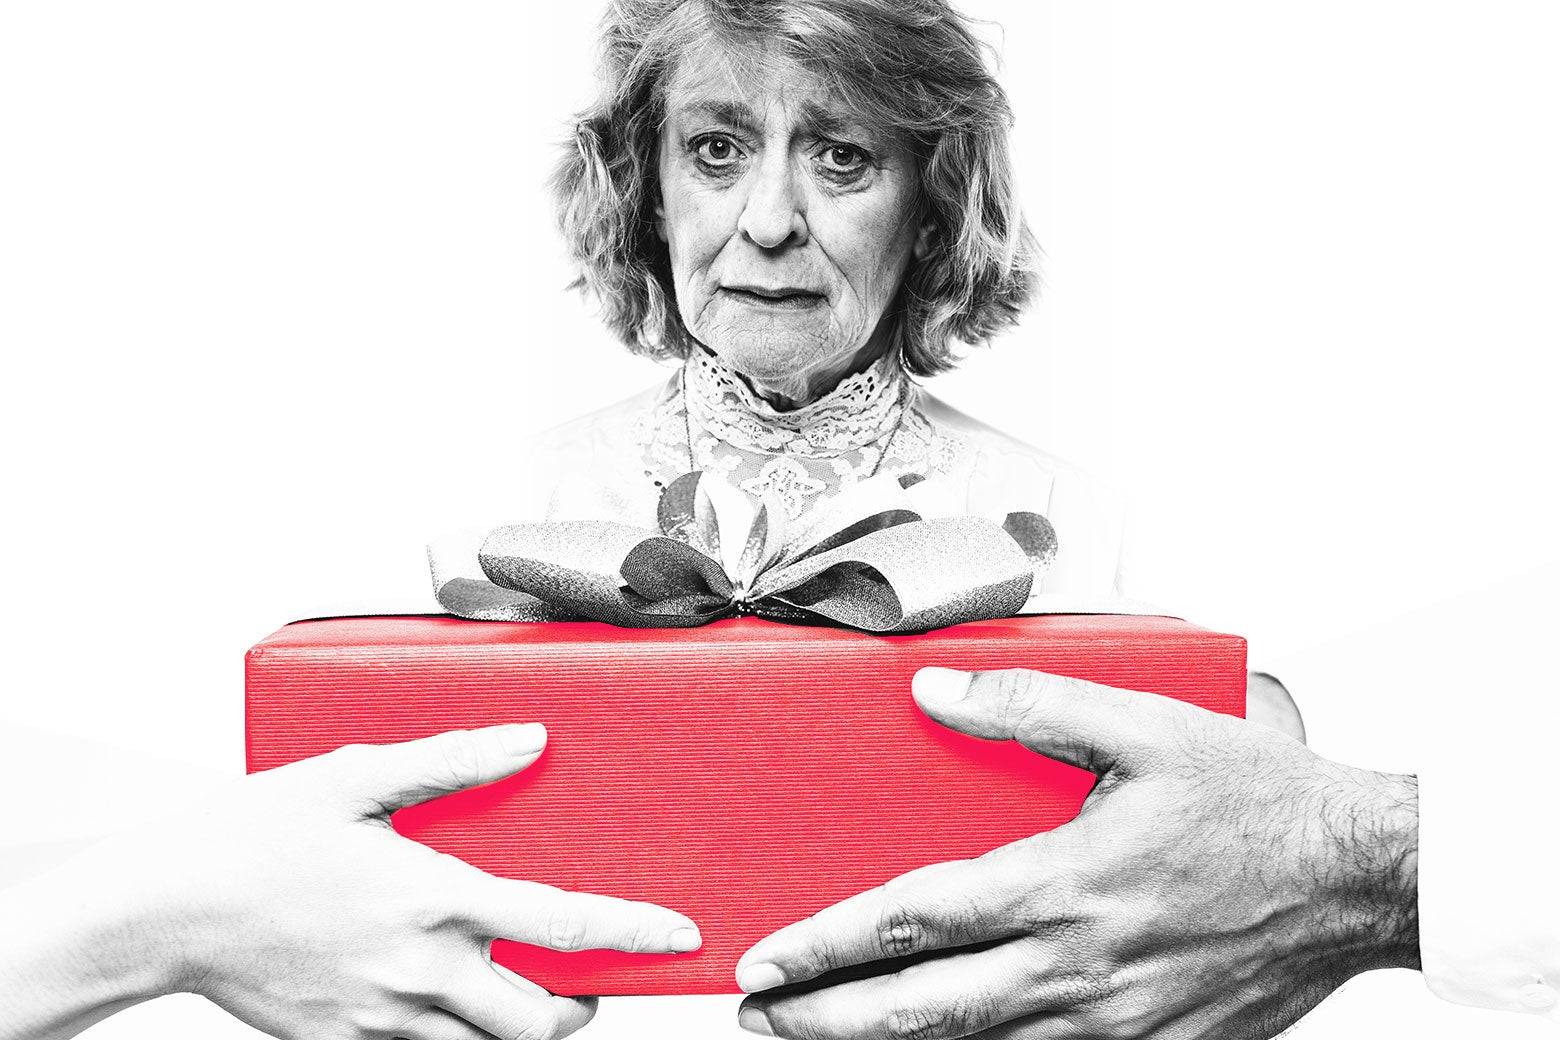 A sad looking older woman being presented with a gift held by two people.